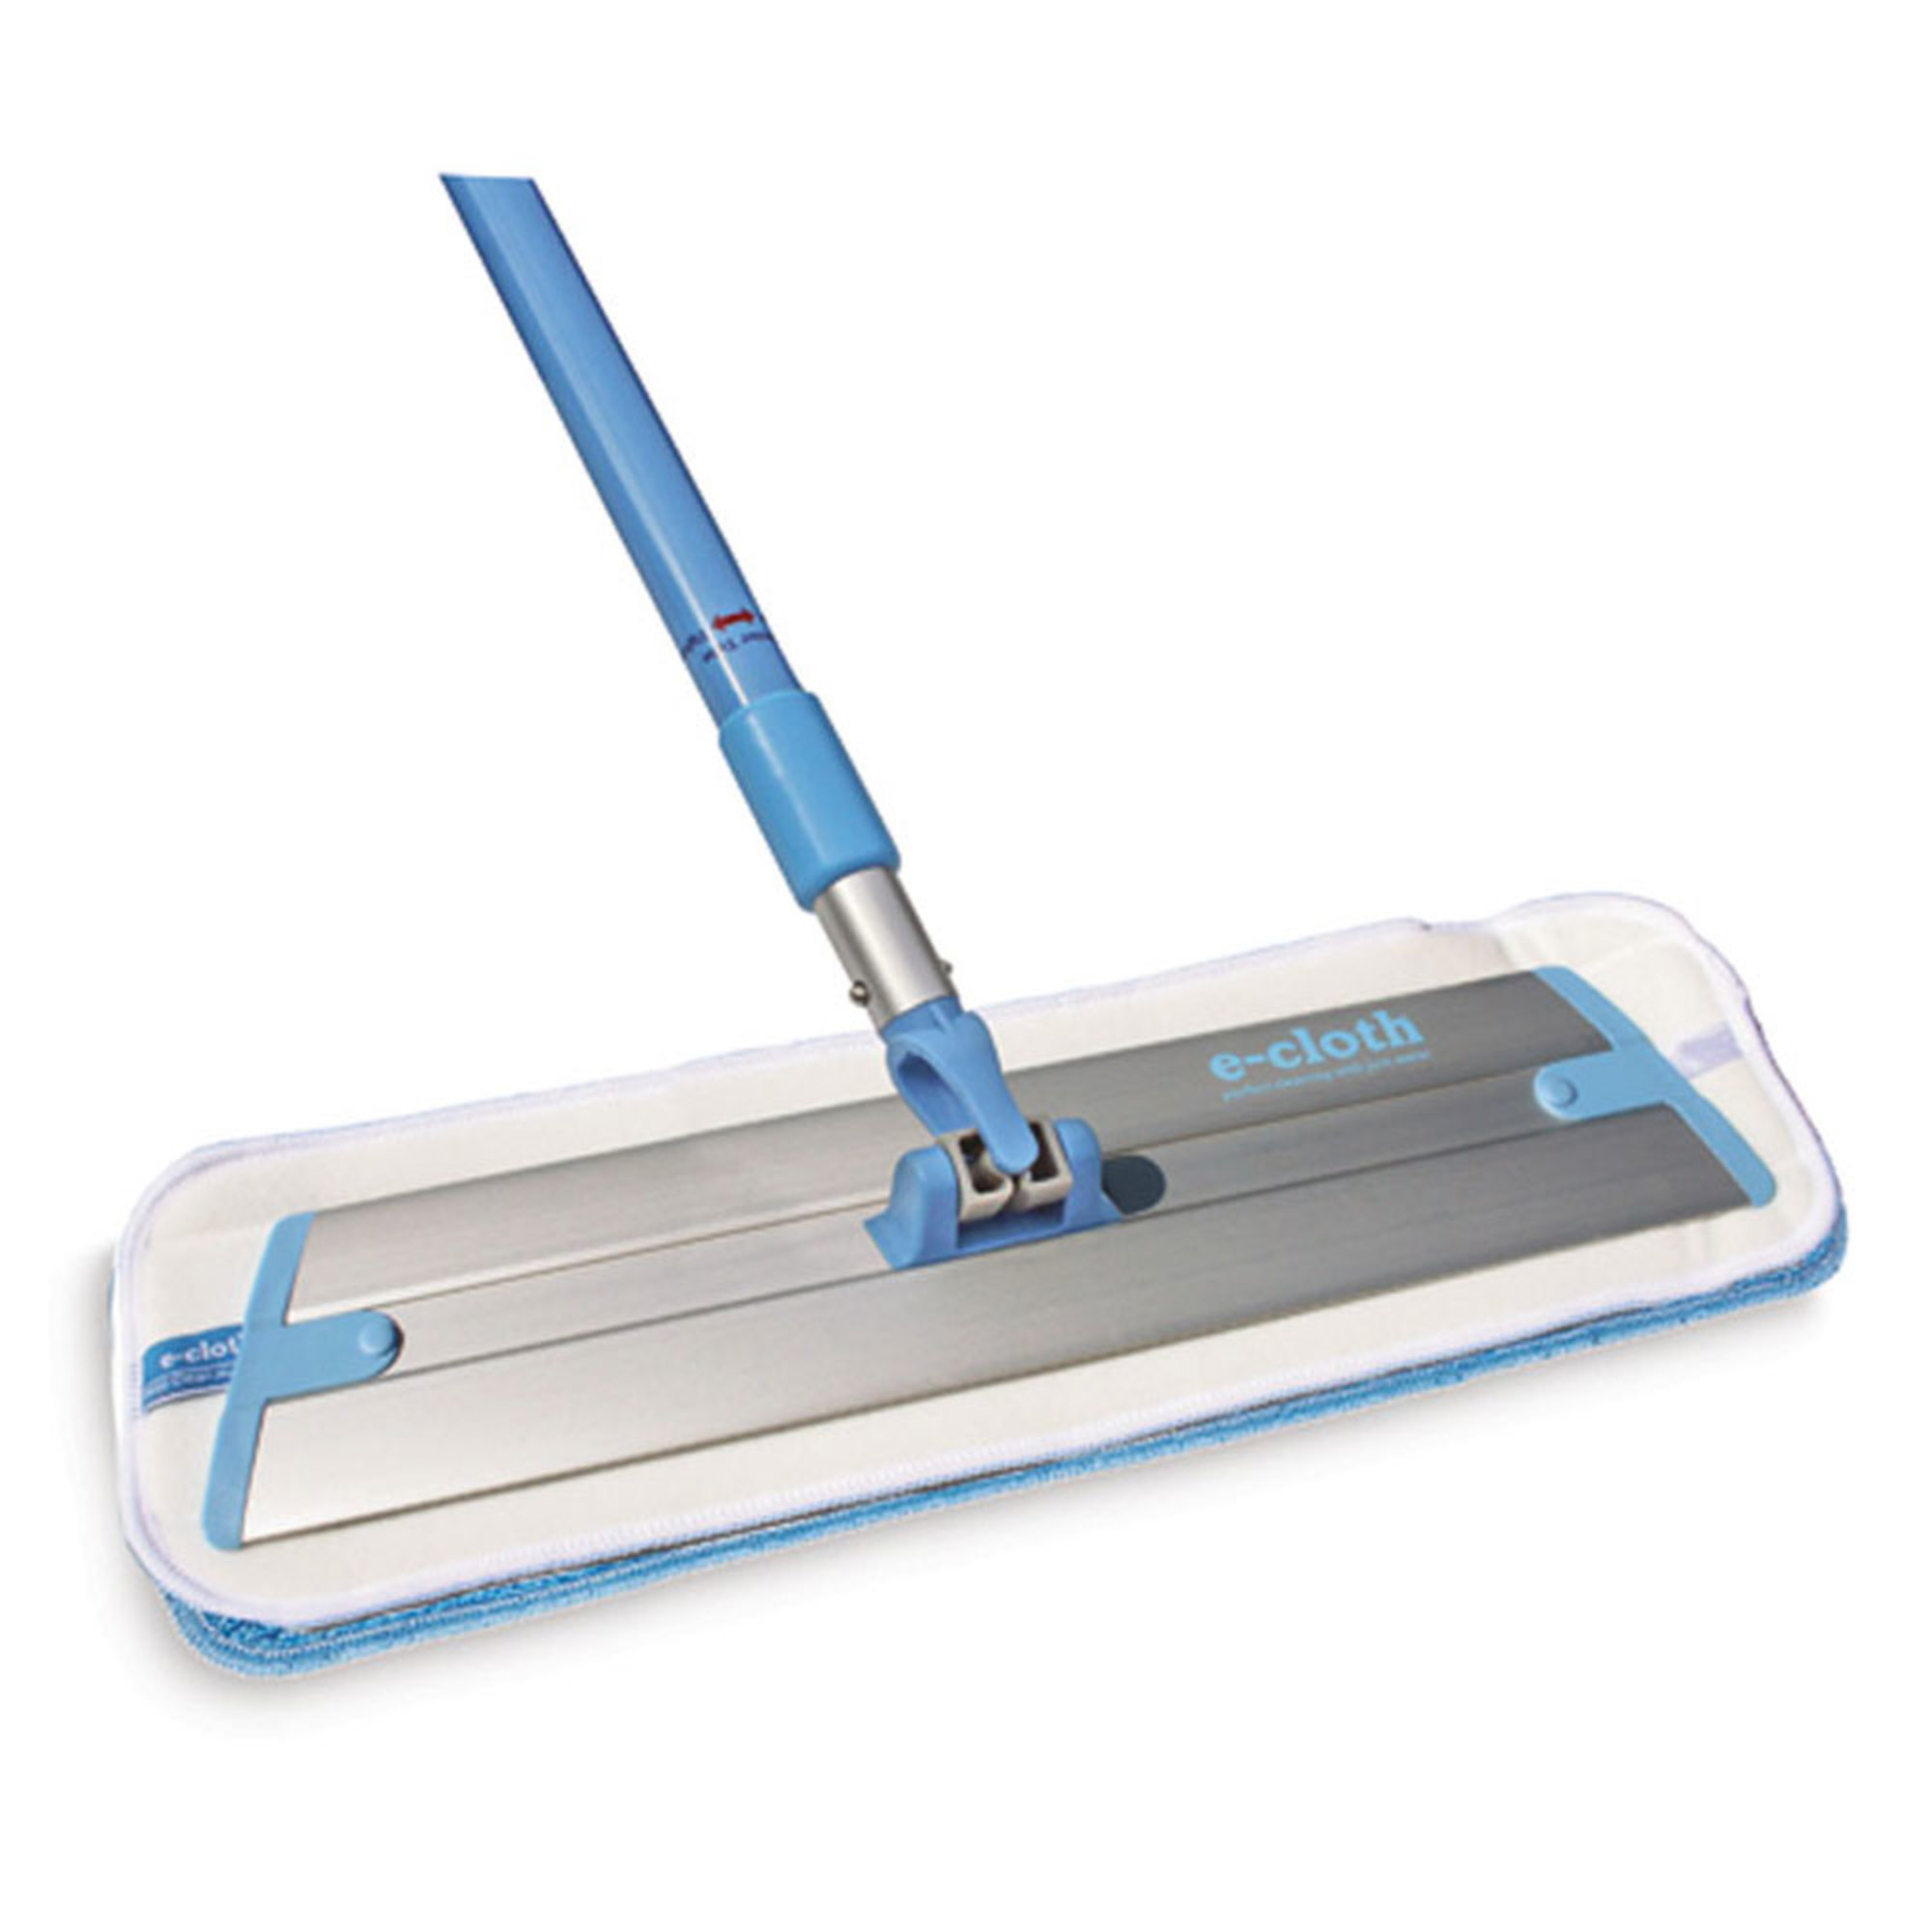 ELCOTH 10620 DEEP CLEAN MOP PERFECT FOR REMOVING GREASE DIRT